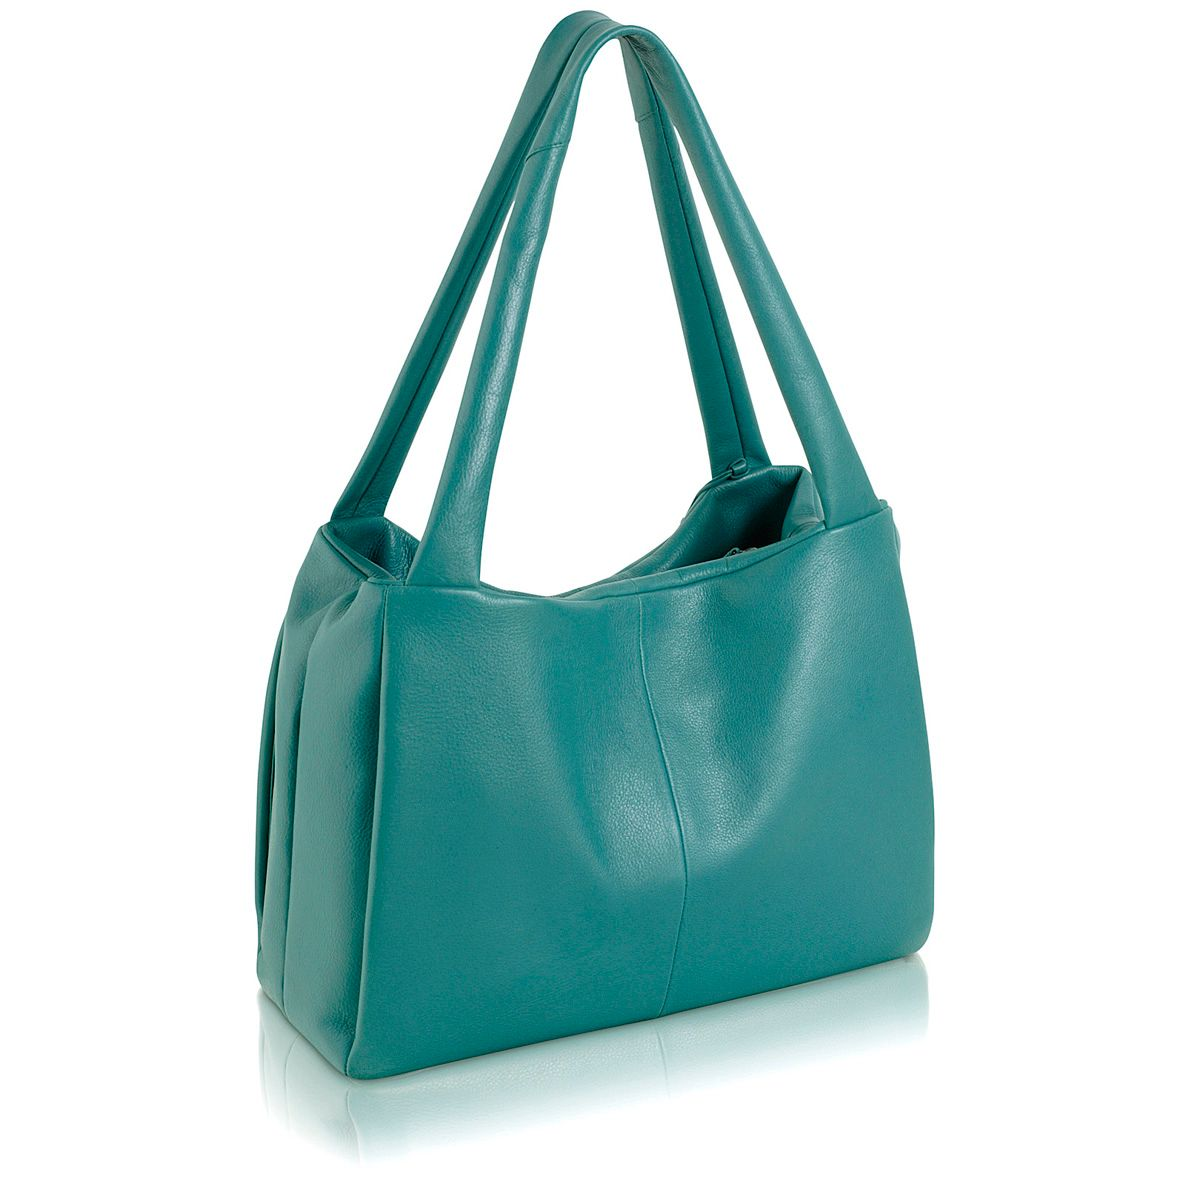 Cavendish blue leather large barrel tote bag